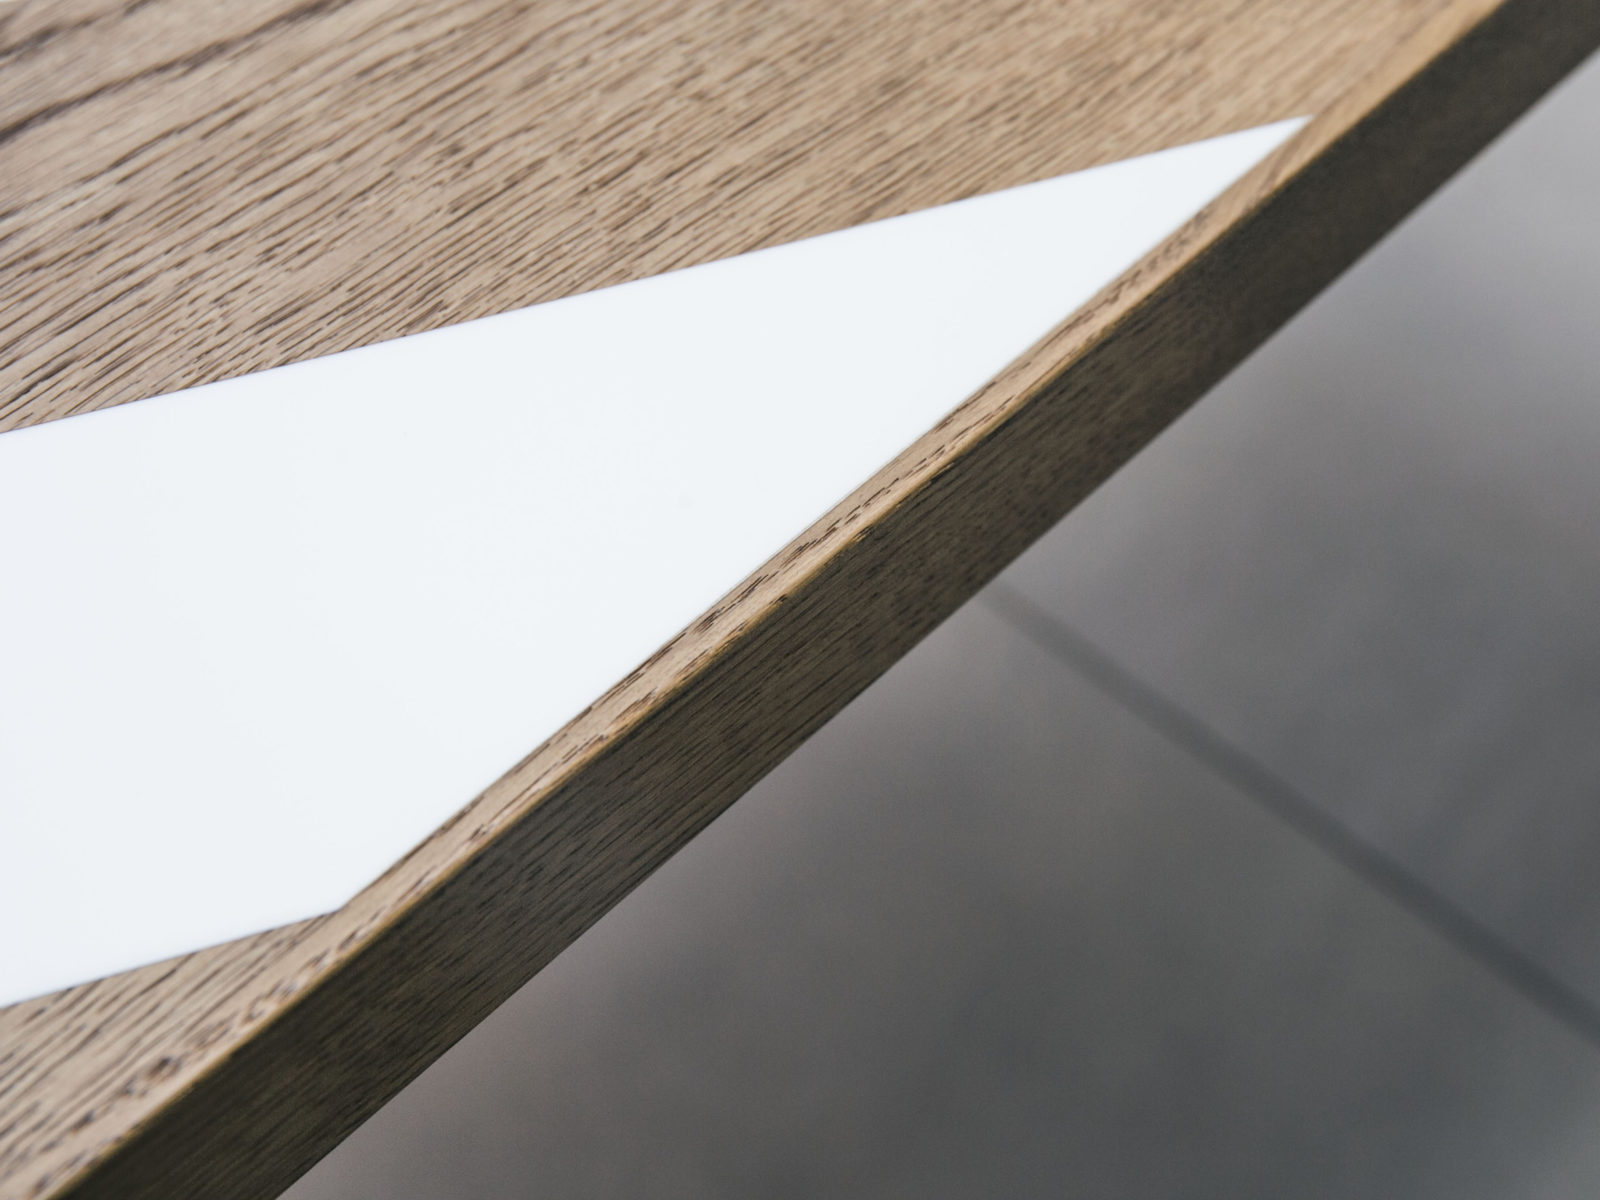 Oak and Corian inlay detail